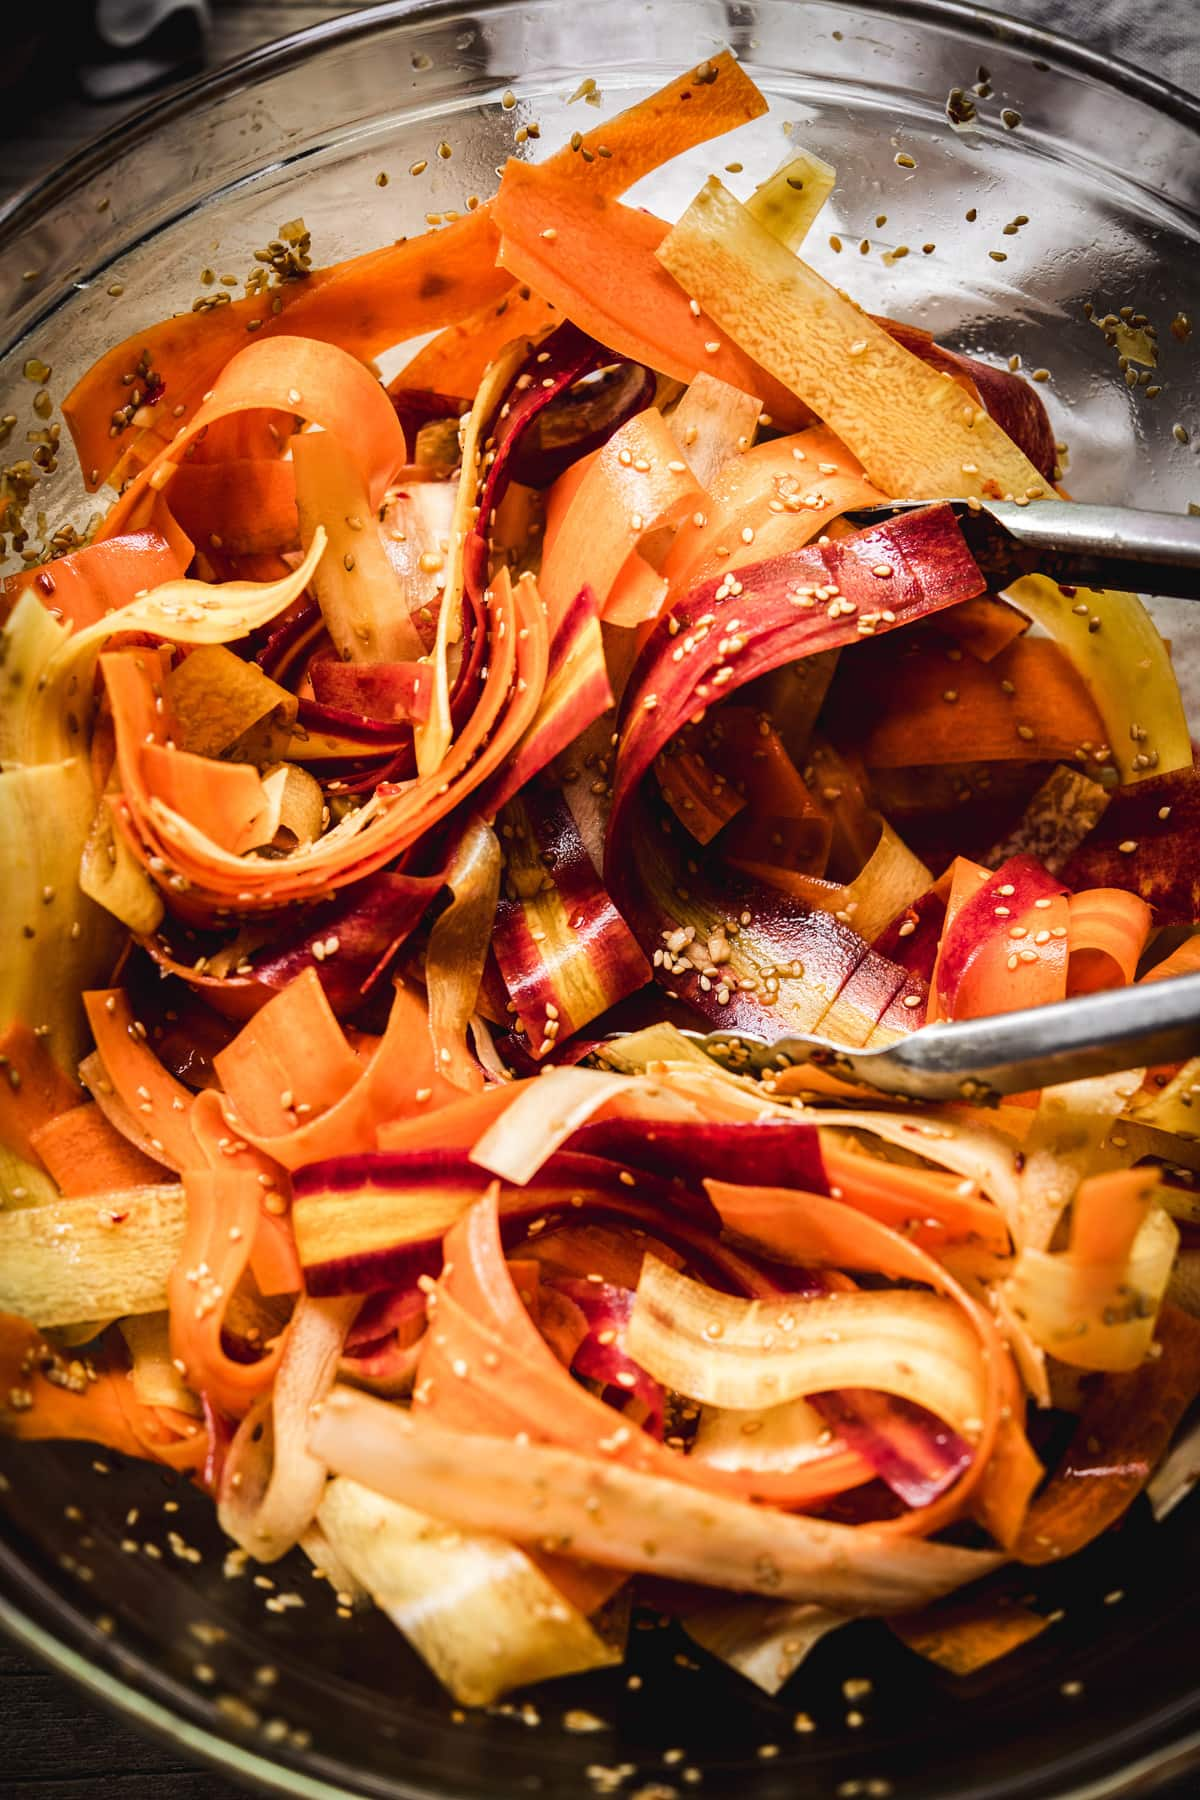 Overhead view of shaved rainbow carrot salad tossed in sesame dressing in glass bowl